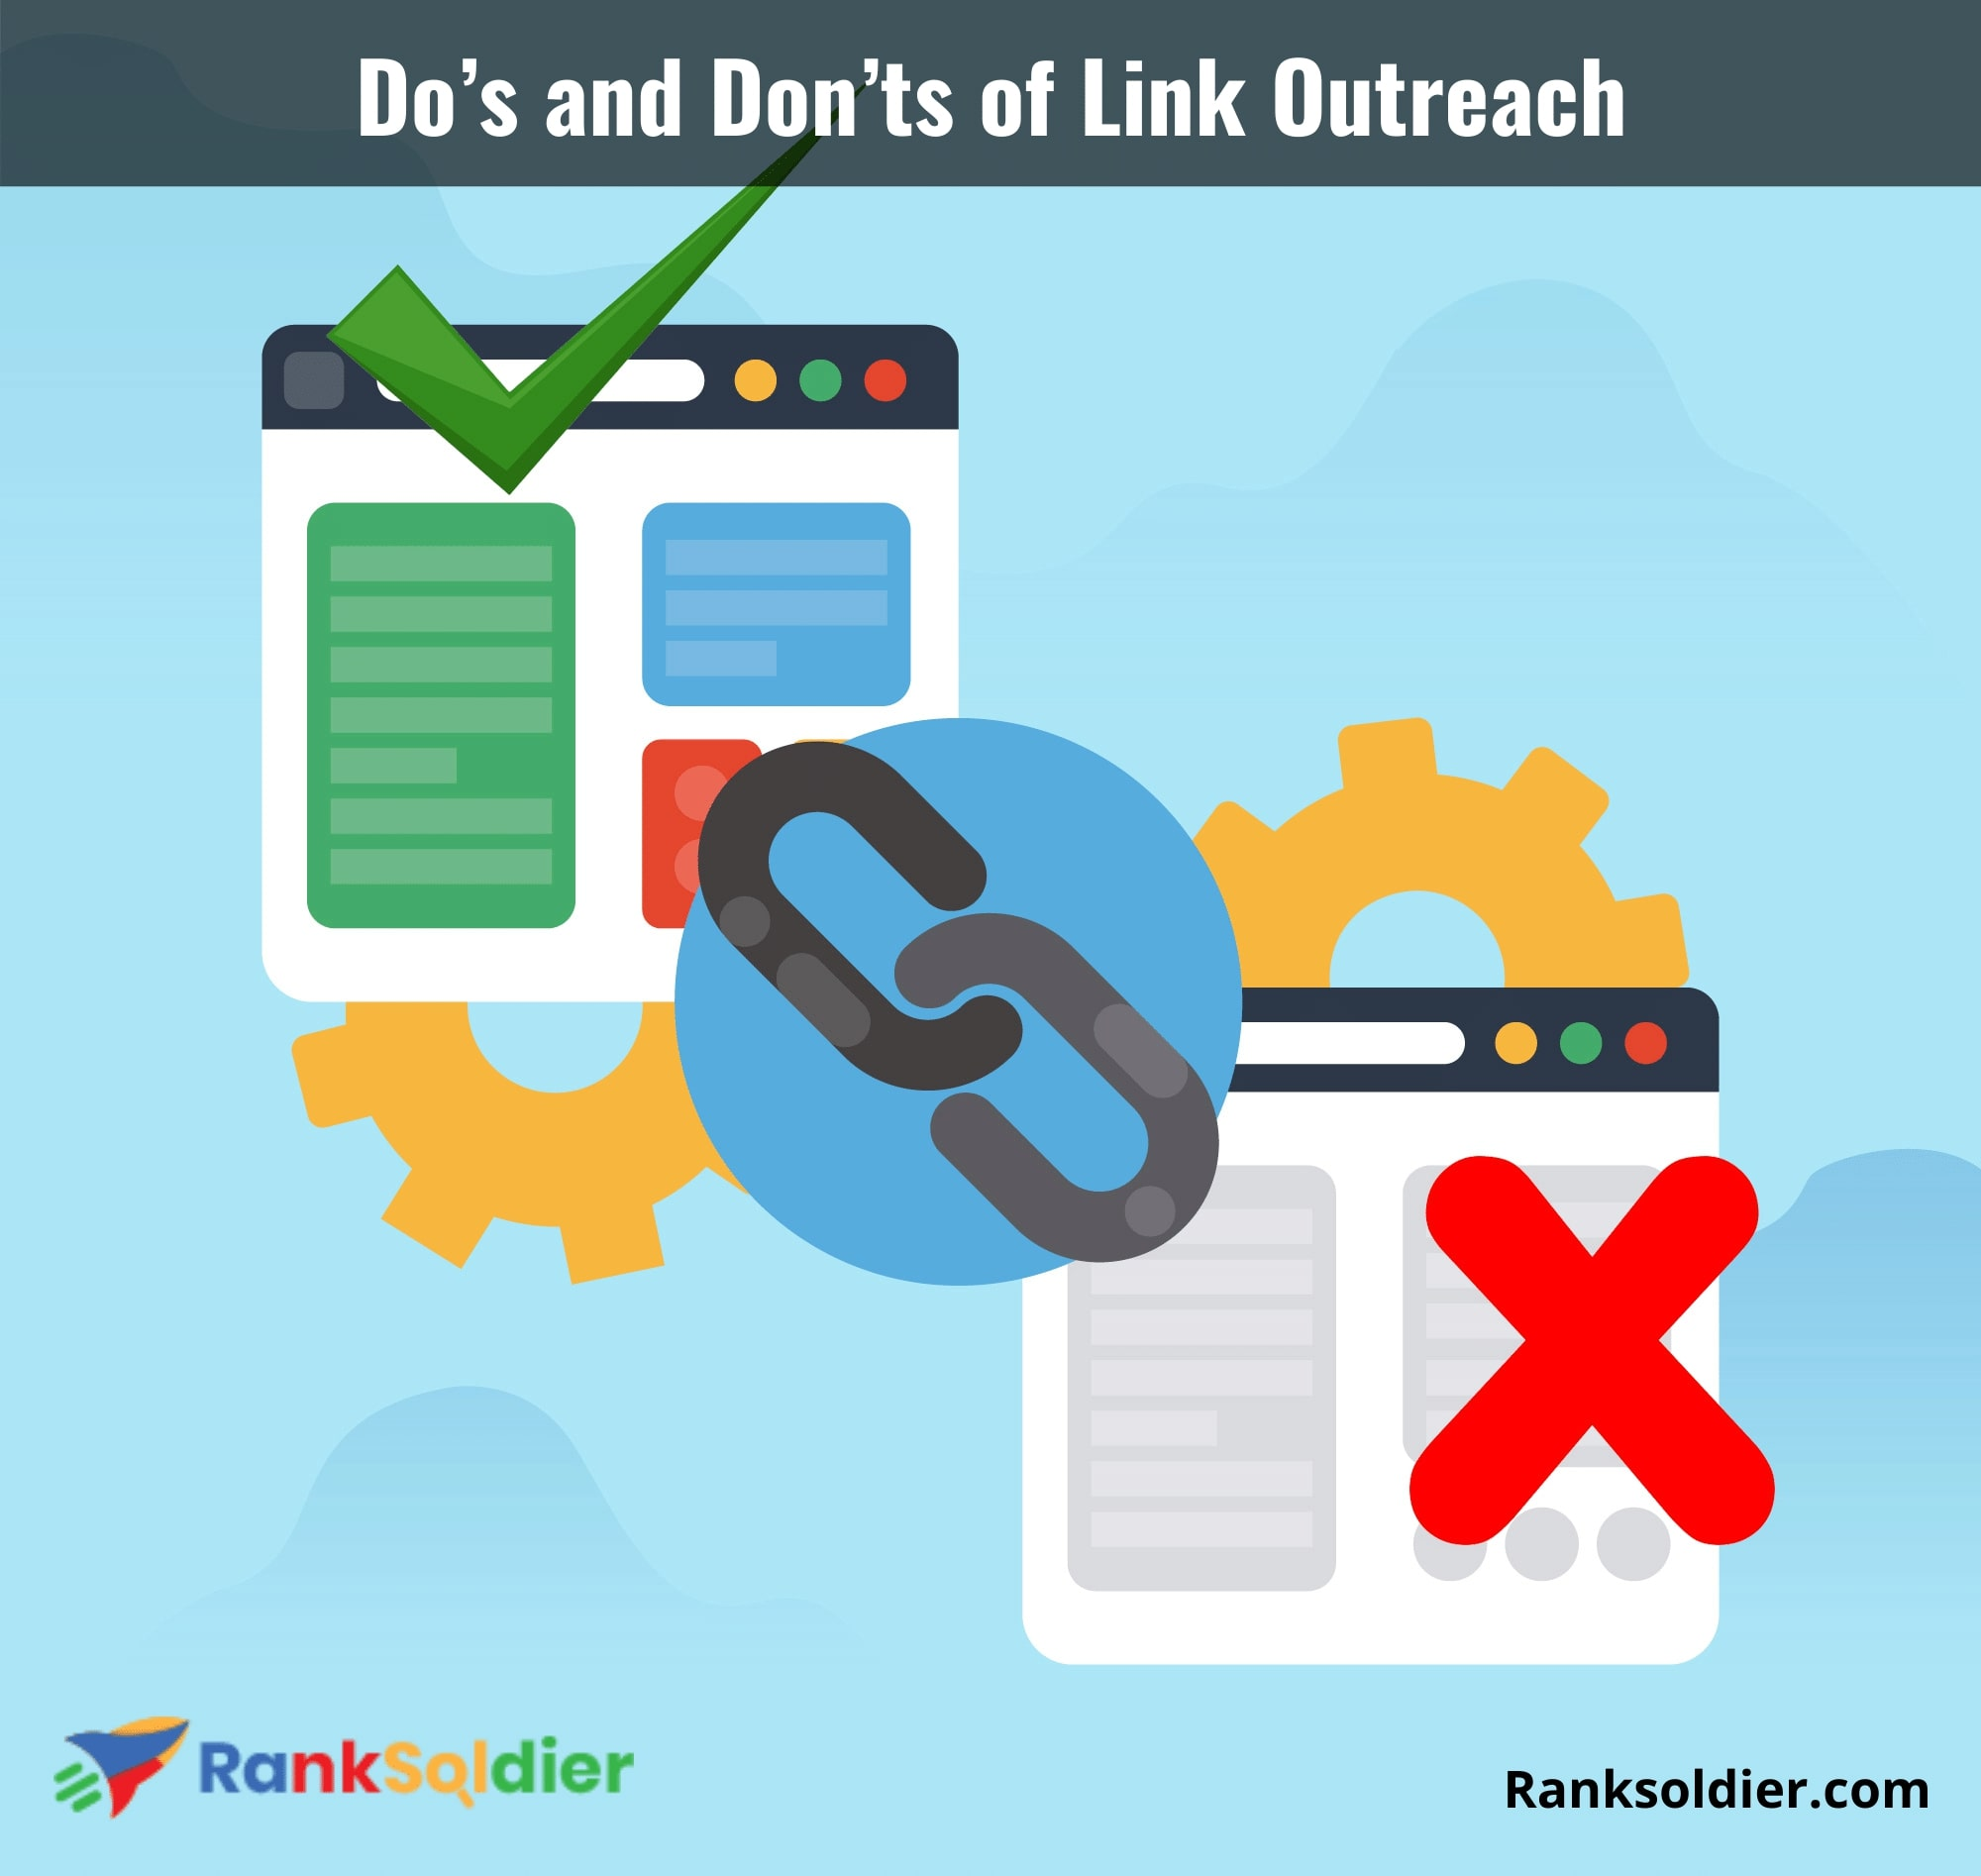 Do's and Don'ts of Link Outreach